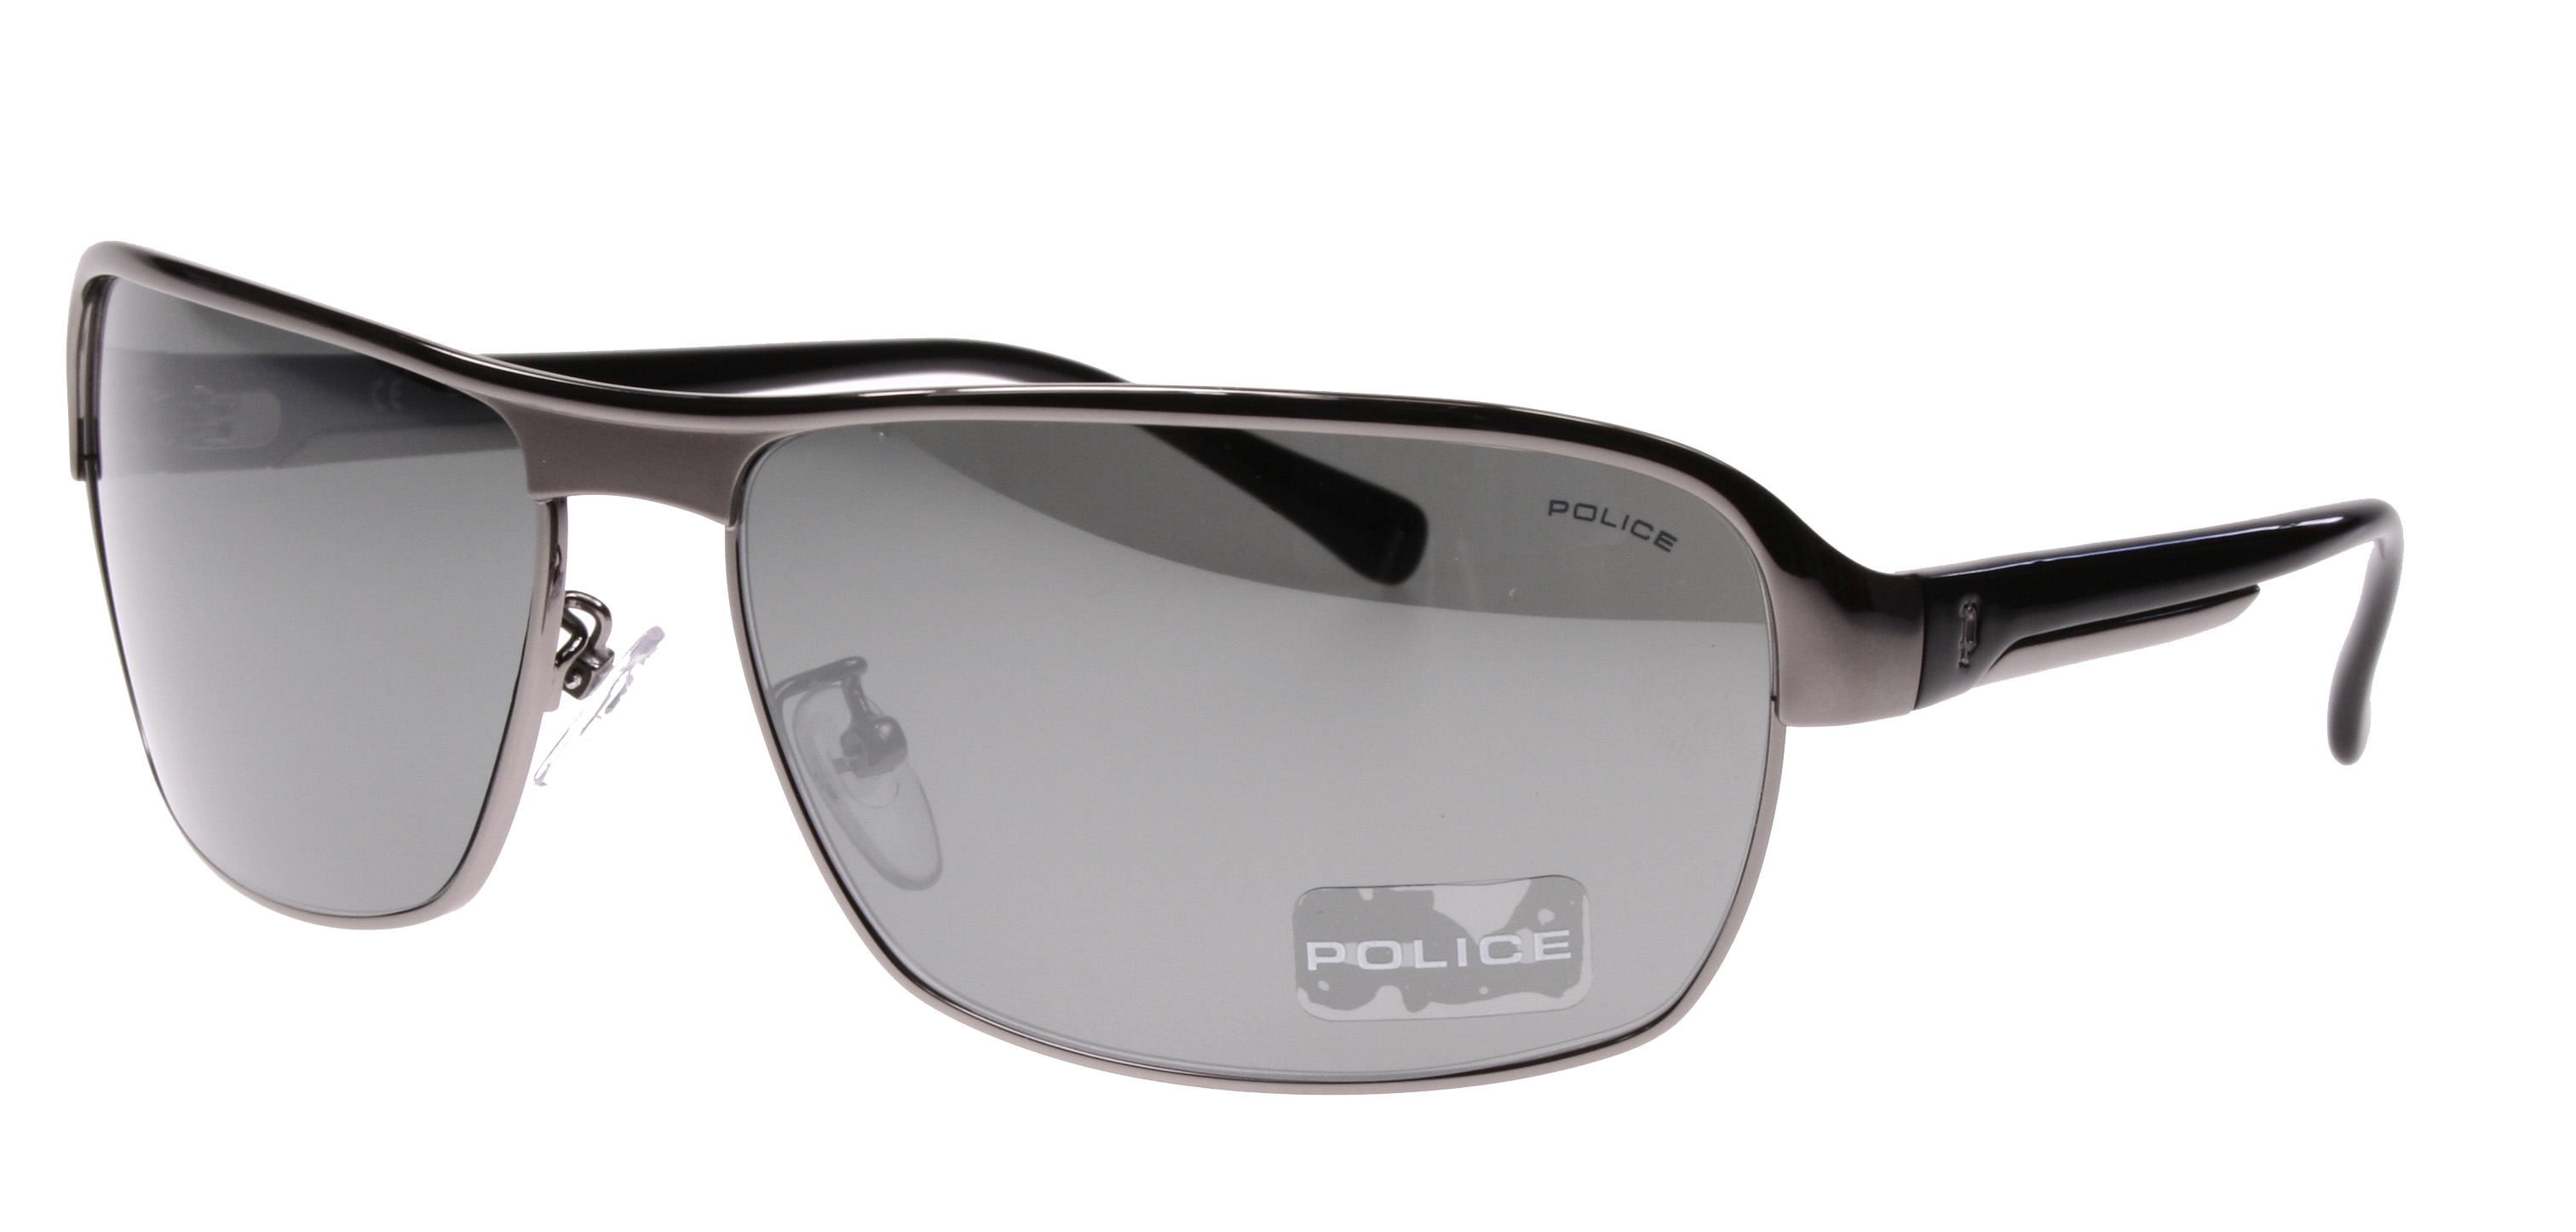 Gold Frame Police Sunglasses : AUTHENTIC NEW 8410 POLICE SUNGLASSES S8410 584X BLACK ...